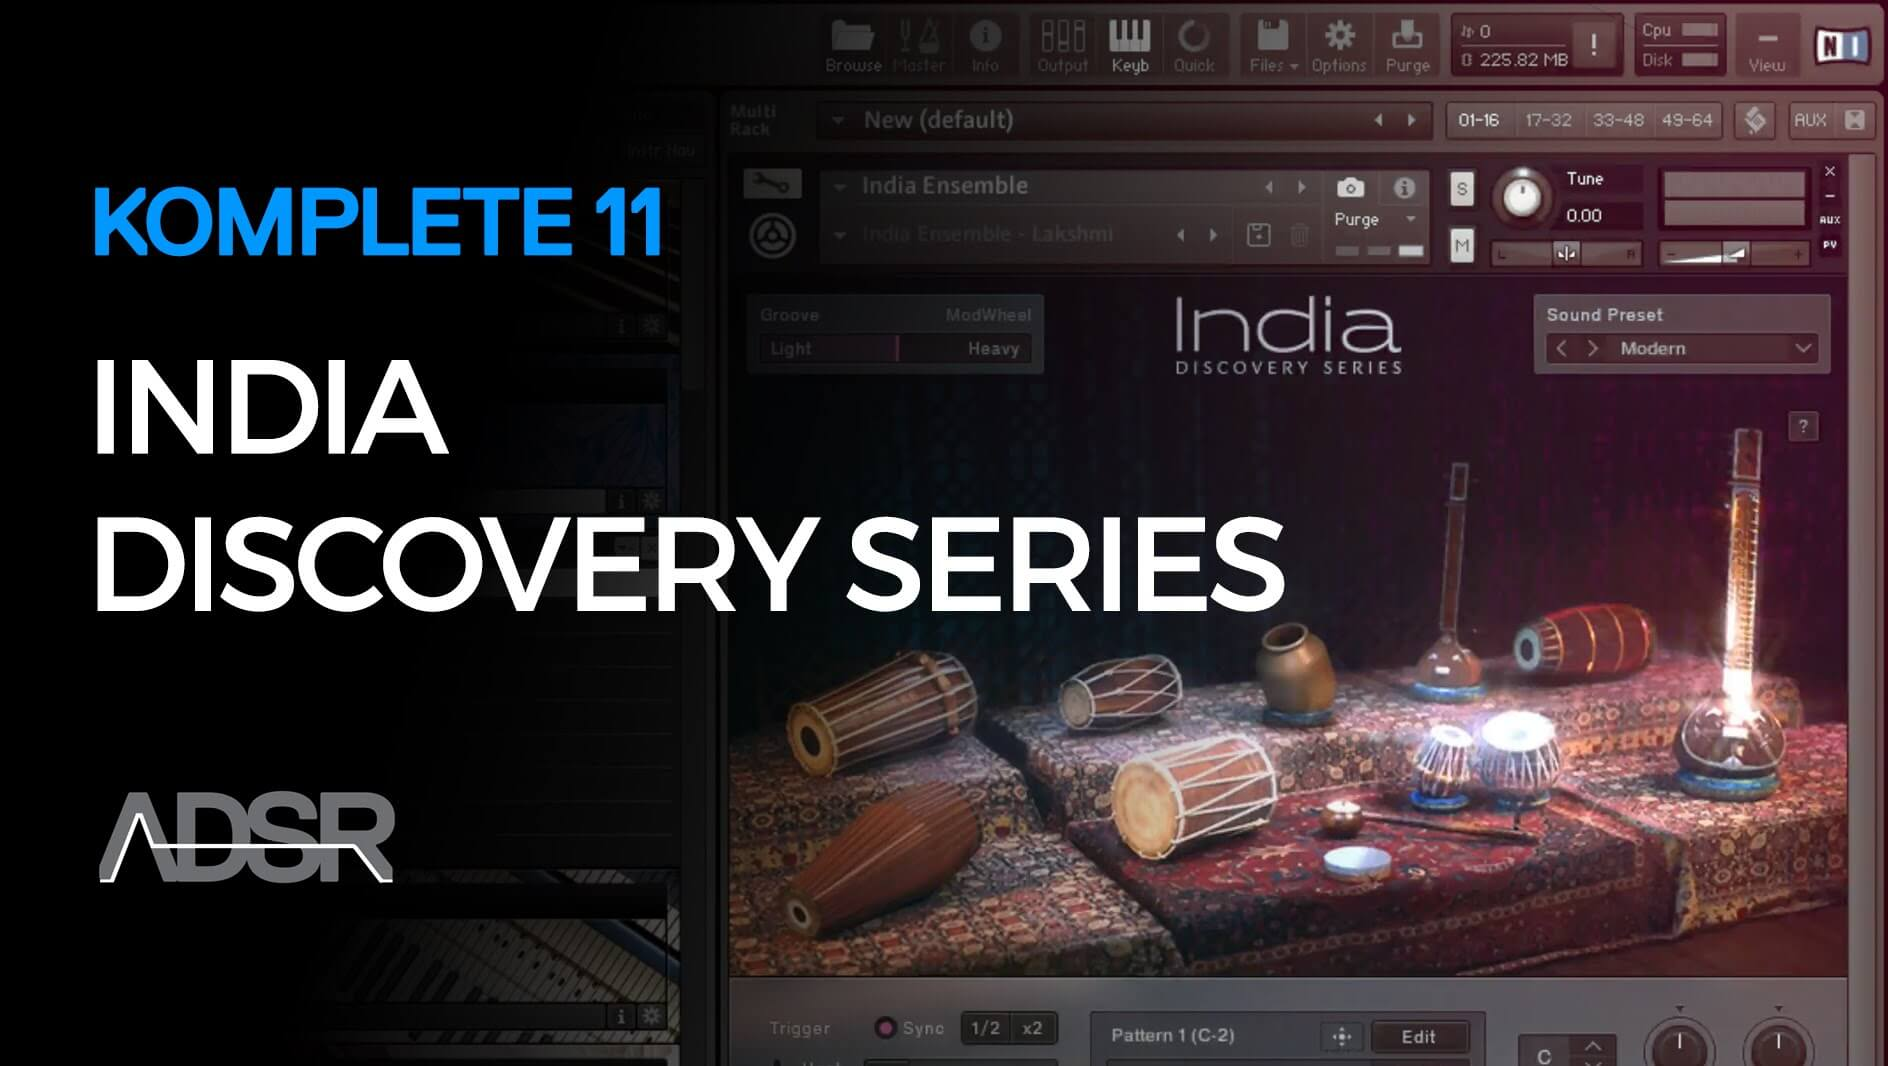 India : Discovery Series – Komplete 11